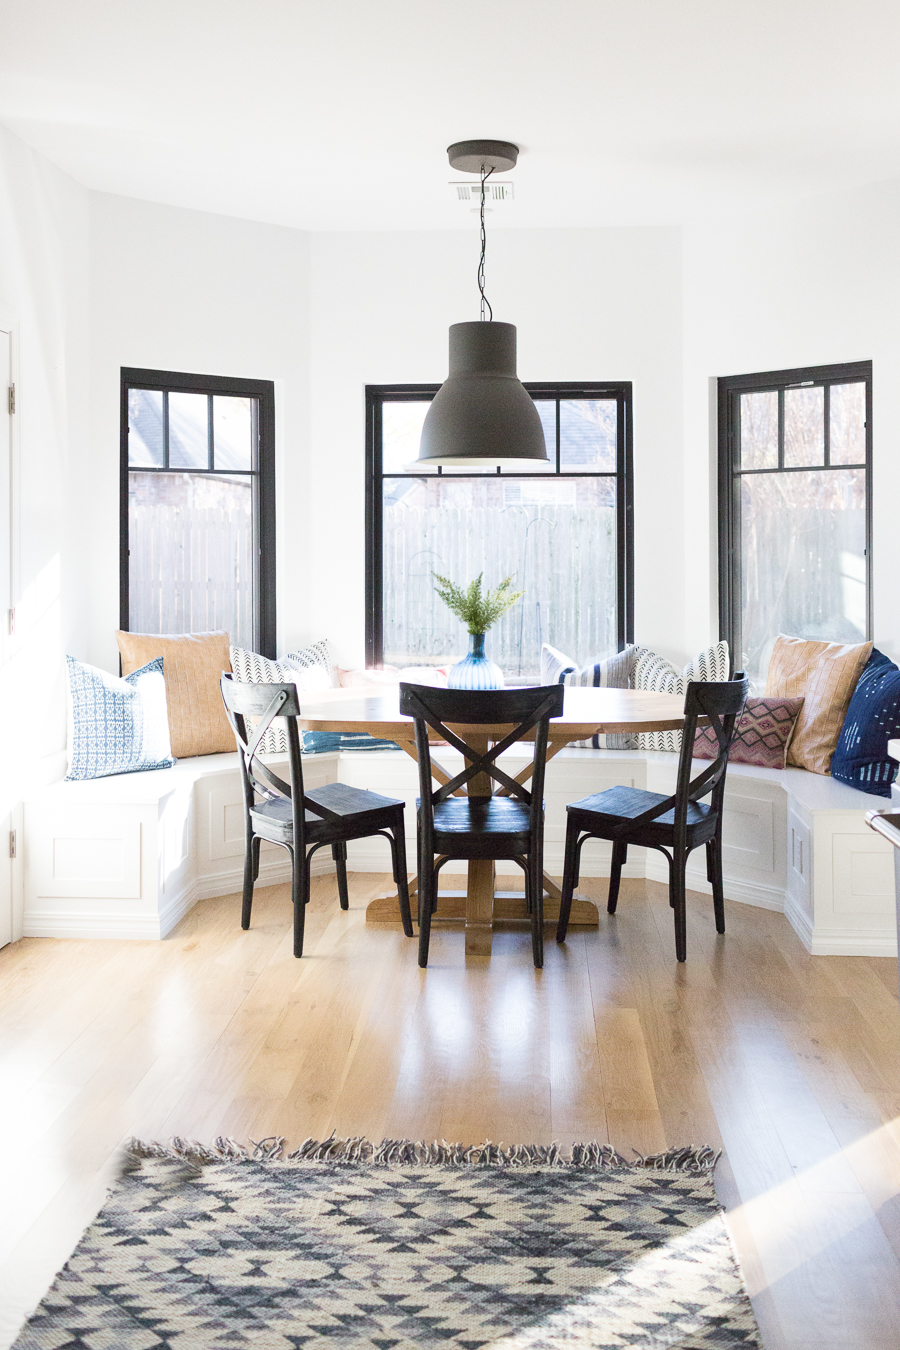 Tulsa Remodel Reveal Modern White Farmhouse Black Windows And Doors Black Windows And Doors Built In Window Seat Banquette Dining Room Black Pendant Lighting 1 Cc Mike